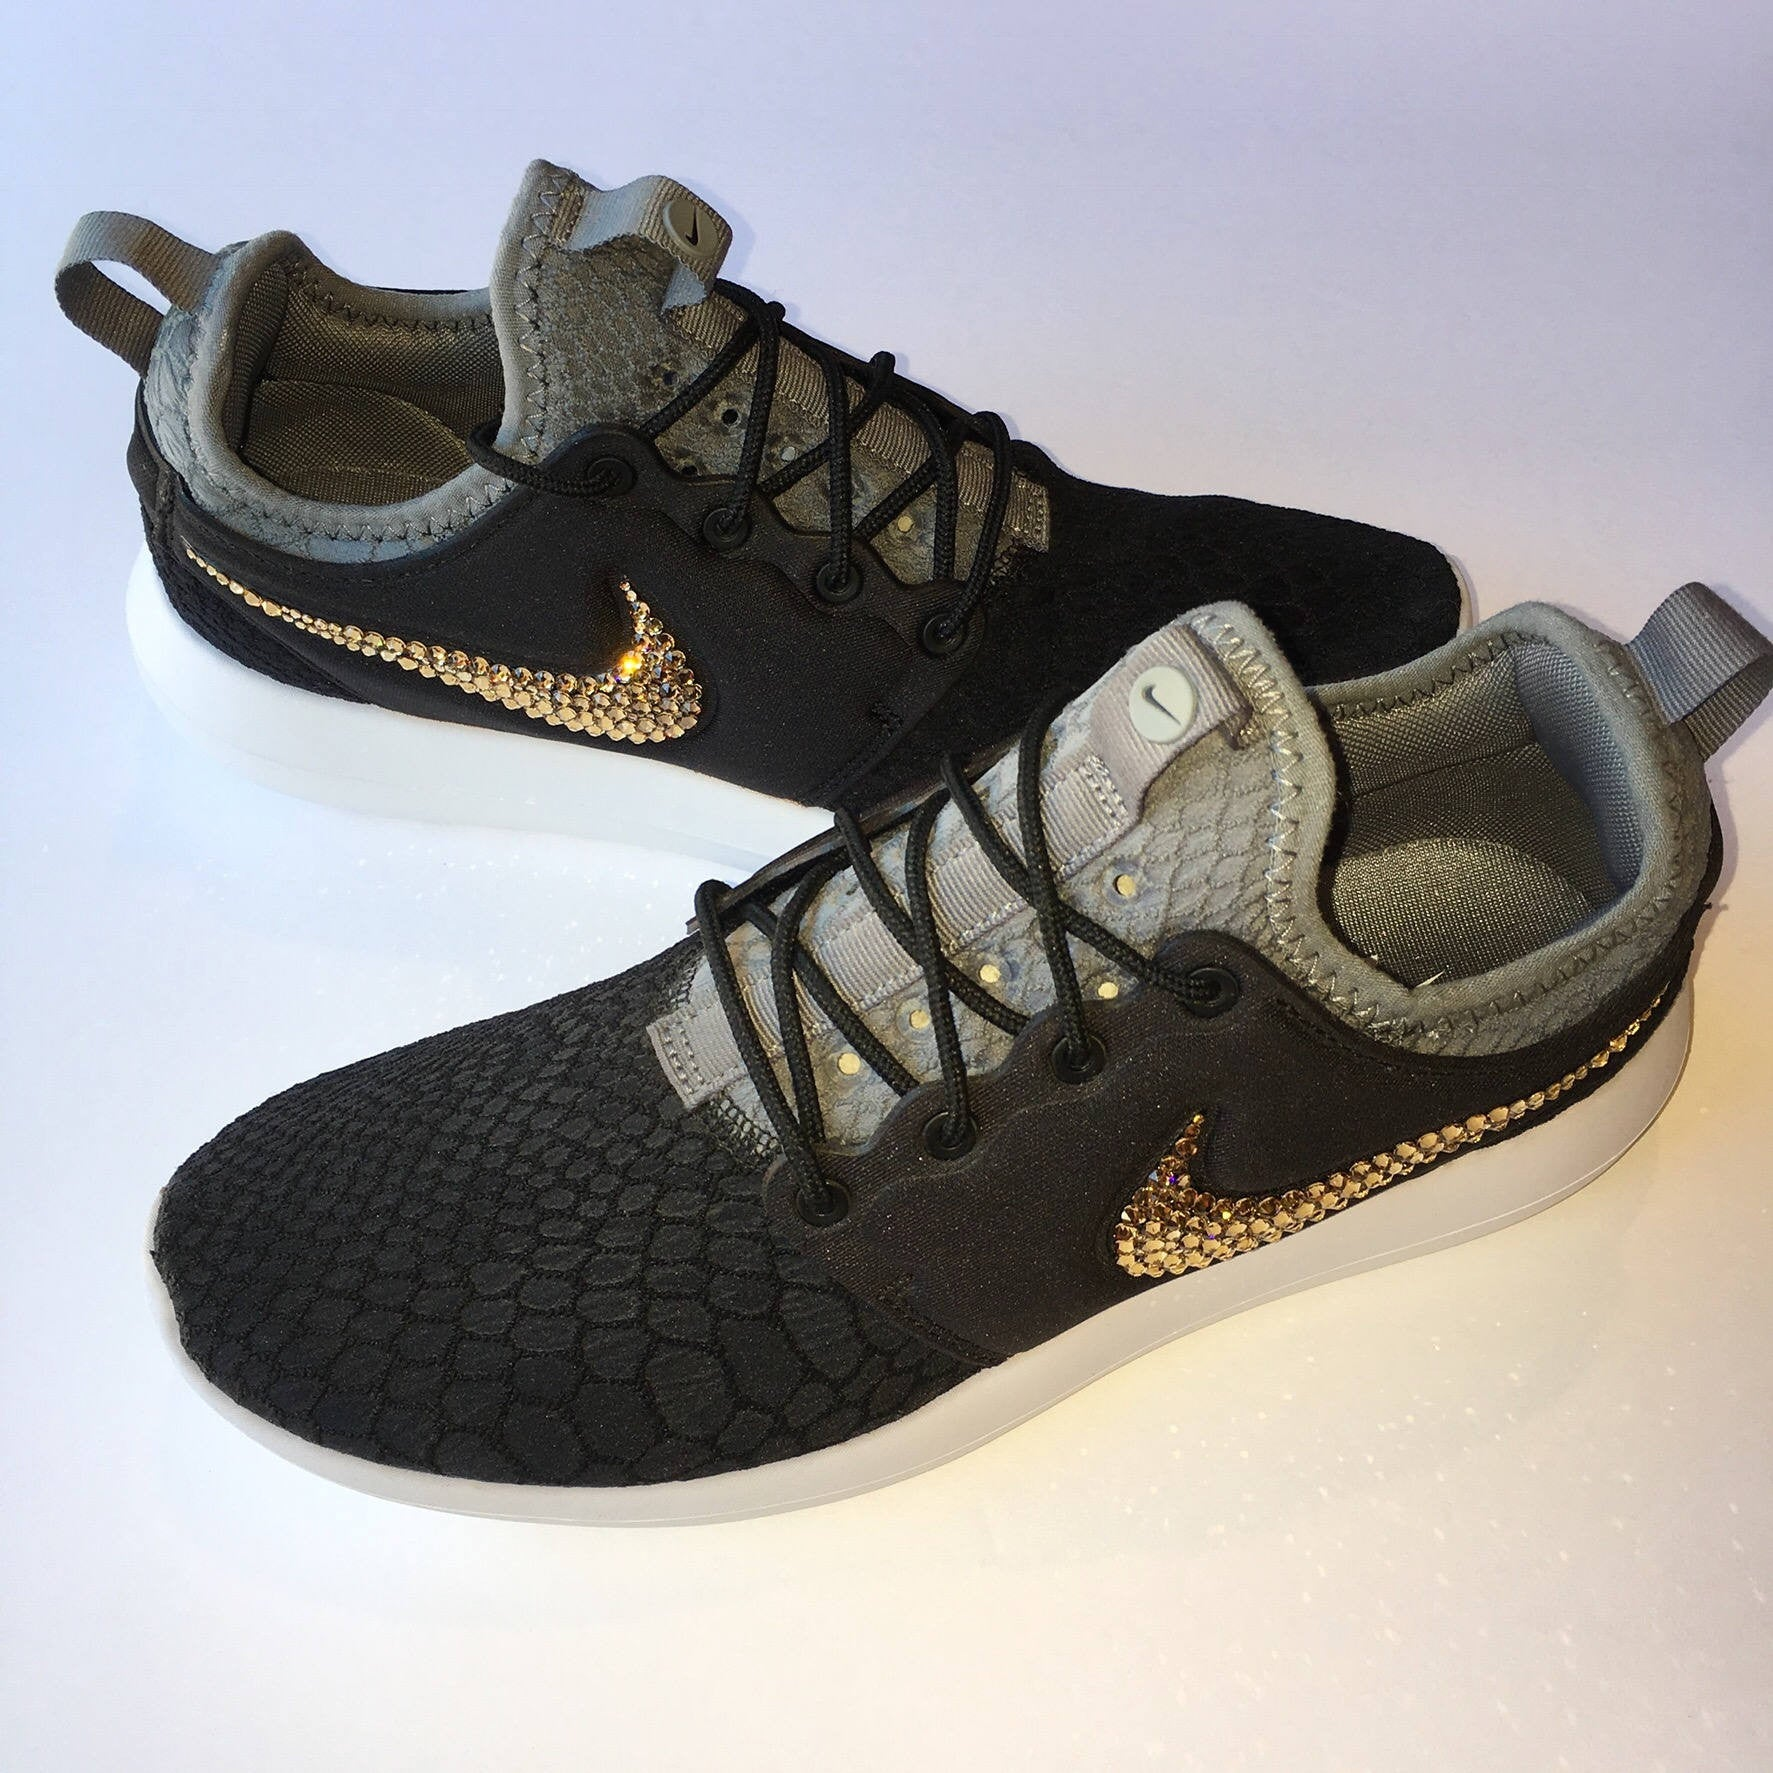 ... Bling Nike Roshe Two SE Shoes with Swarovski Crystals   Black   Gold    Bedazzled Authentic ... 3175d9ea52